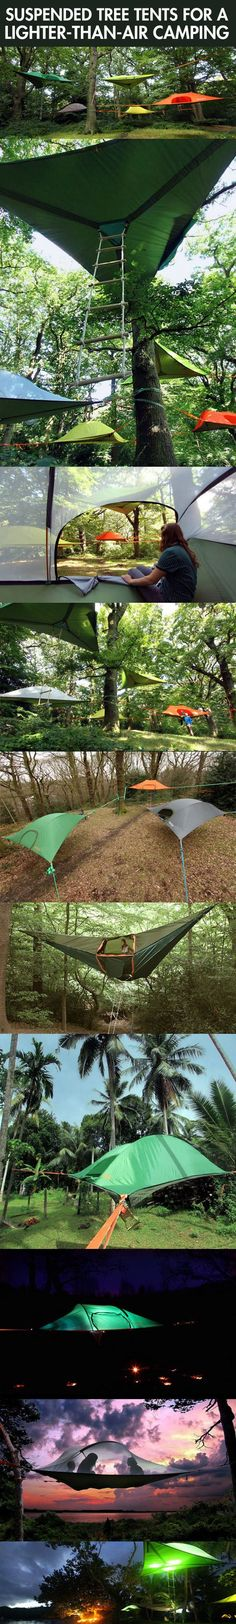 Suspended tree tents! I would actually enjoy camping